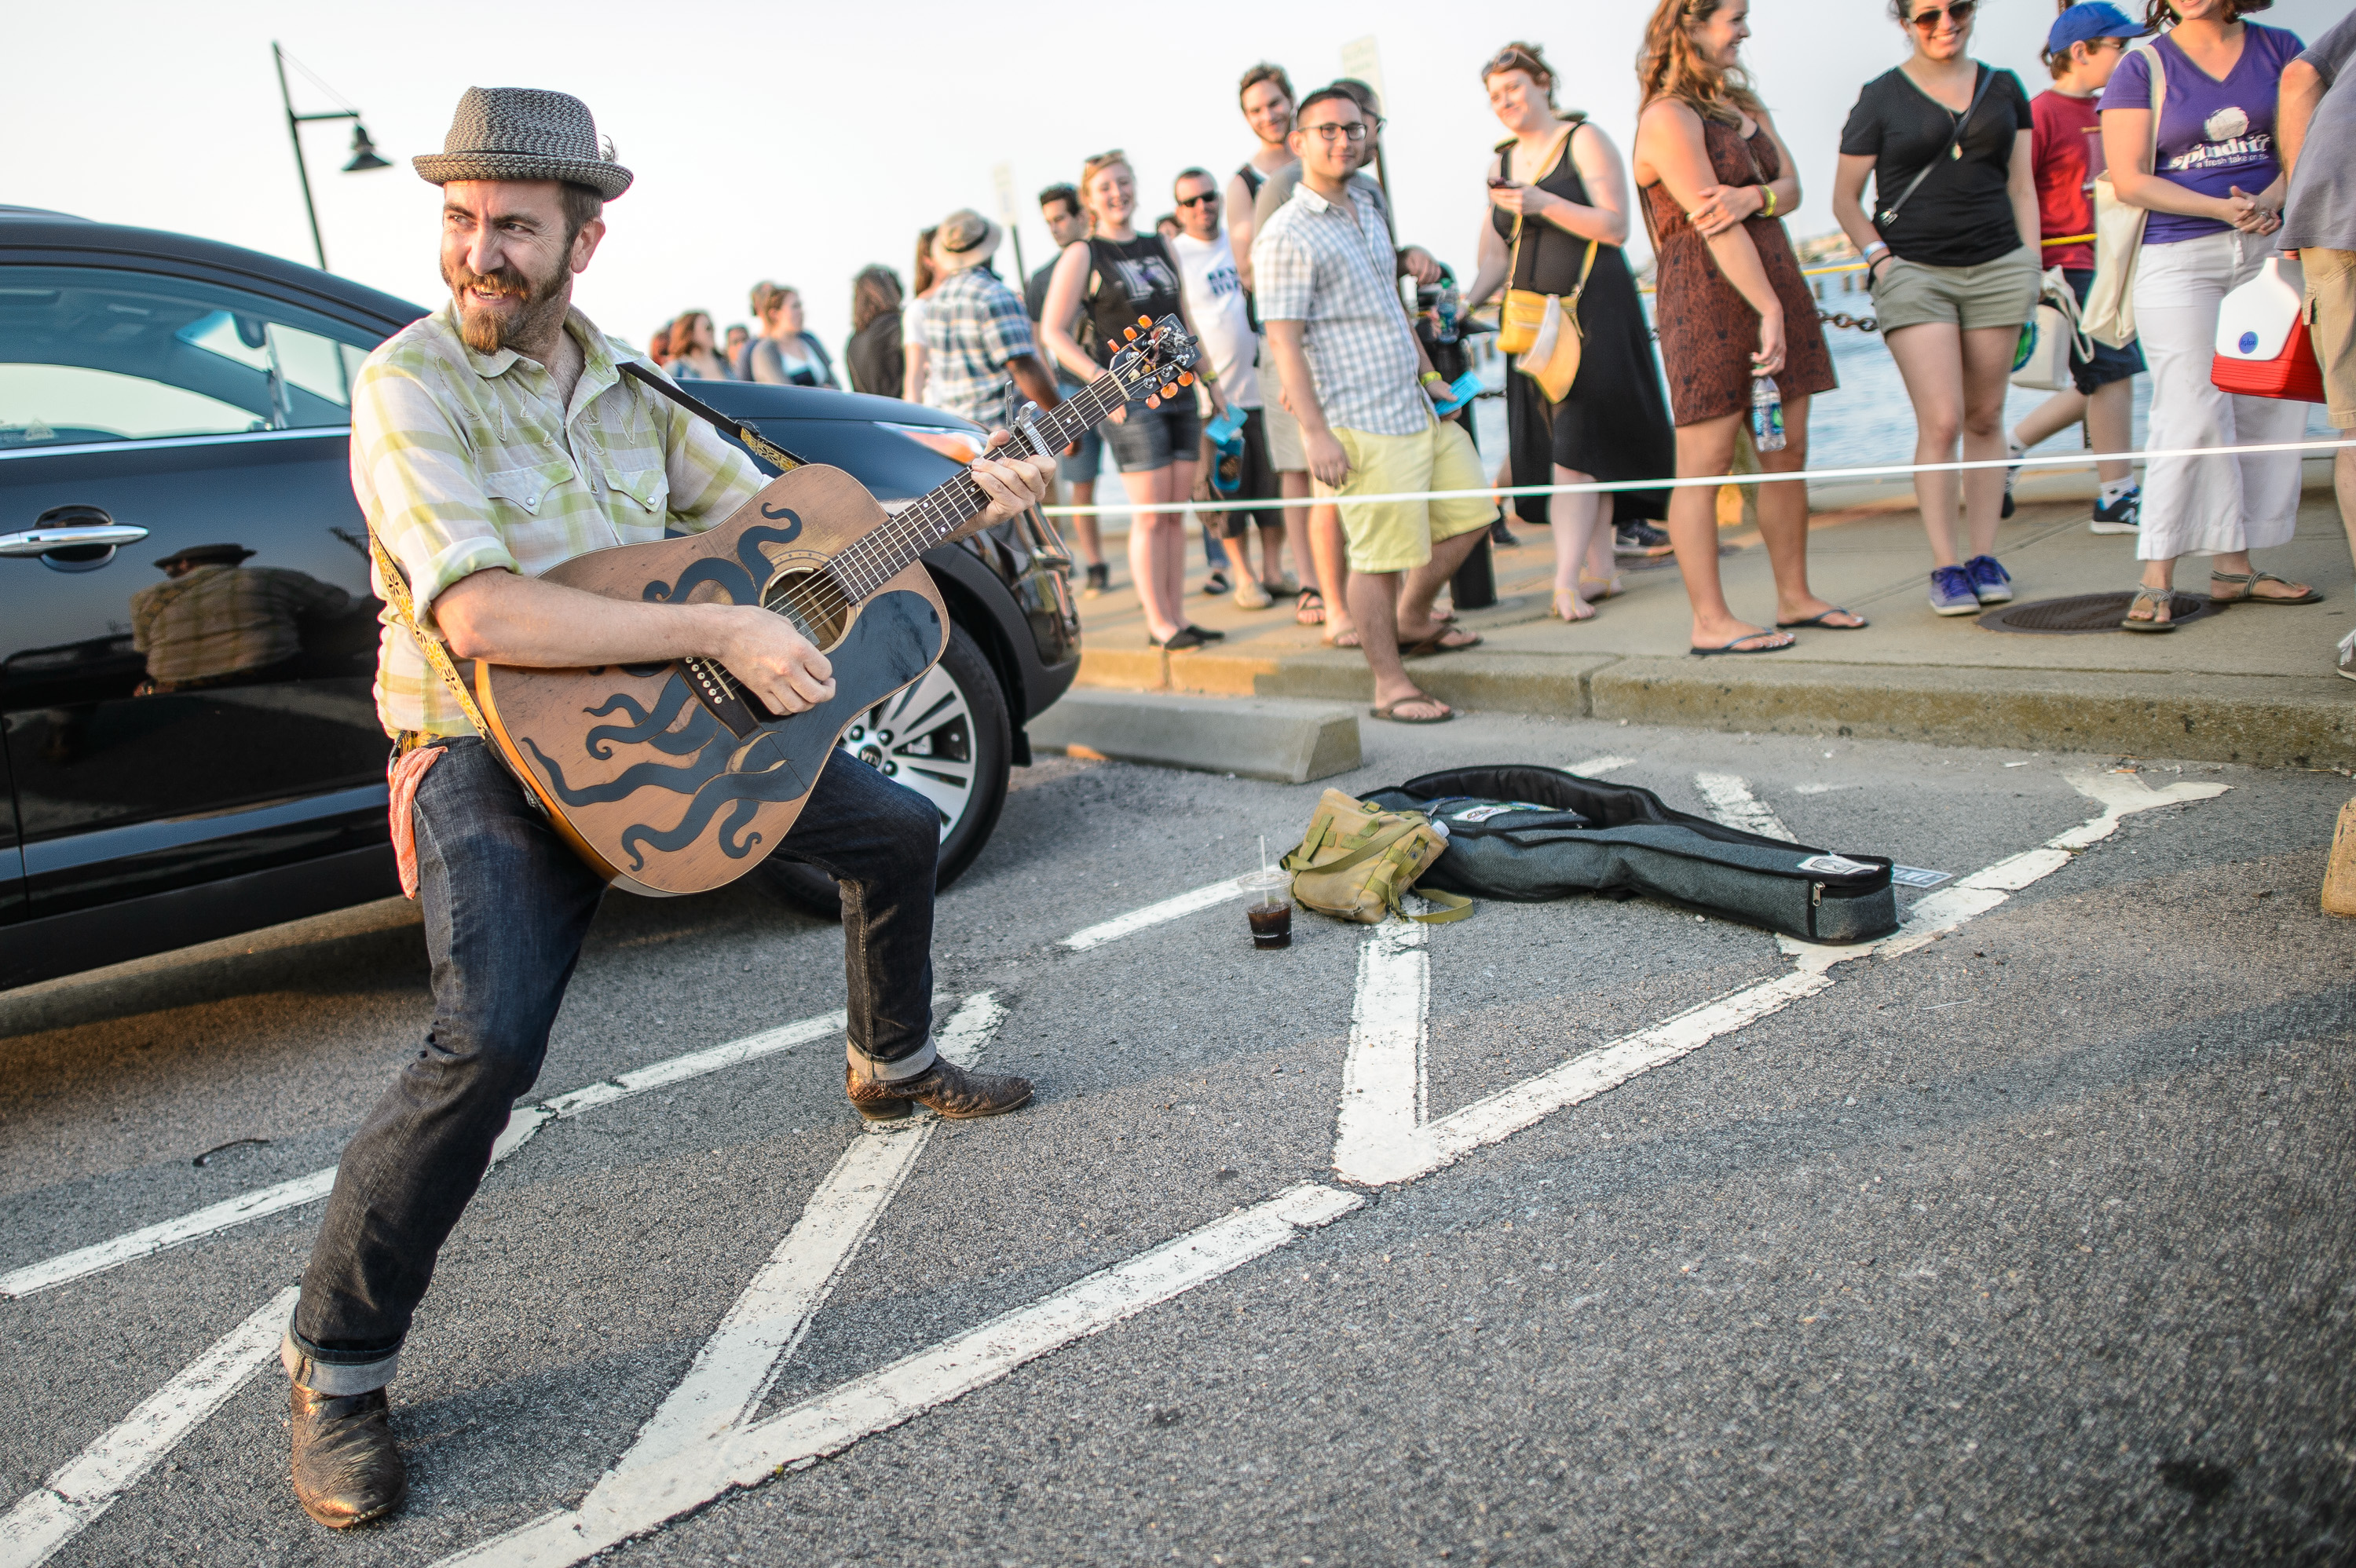 The 2014 Newport Folk Festival